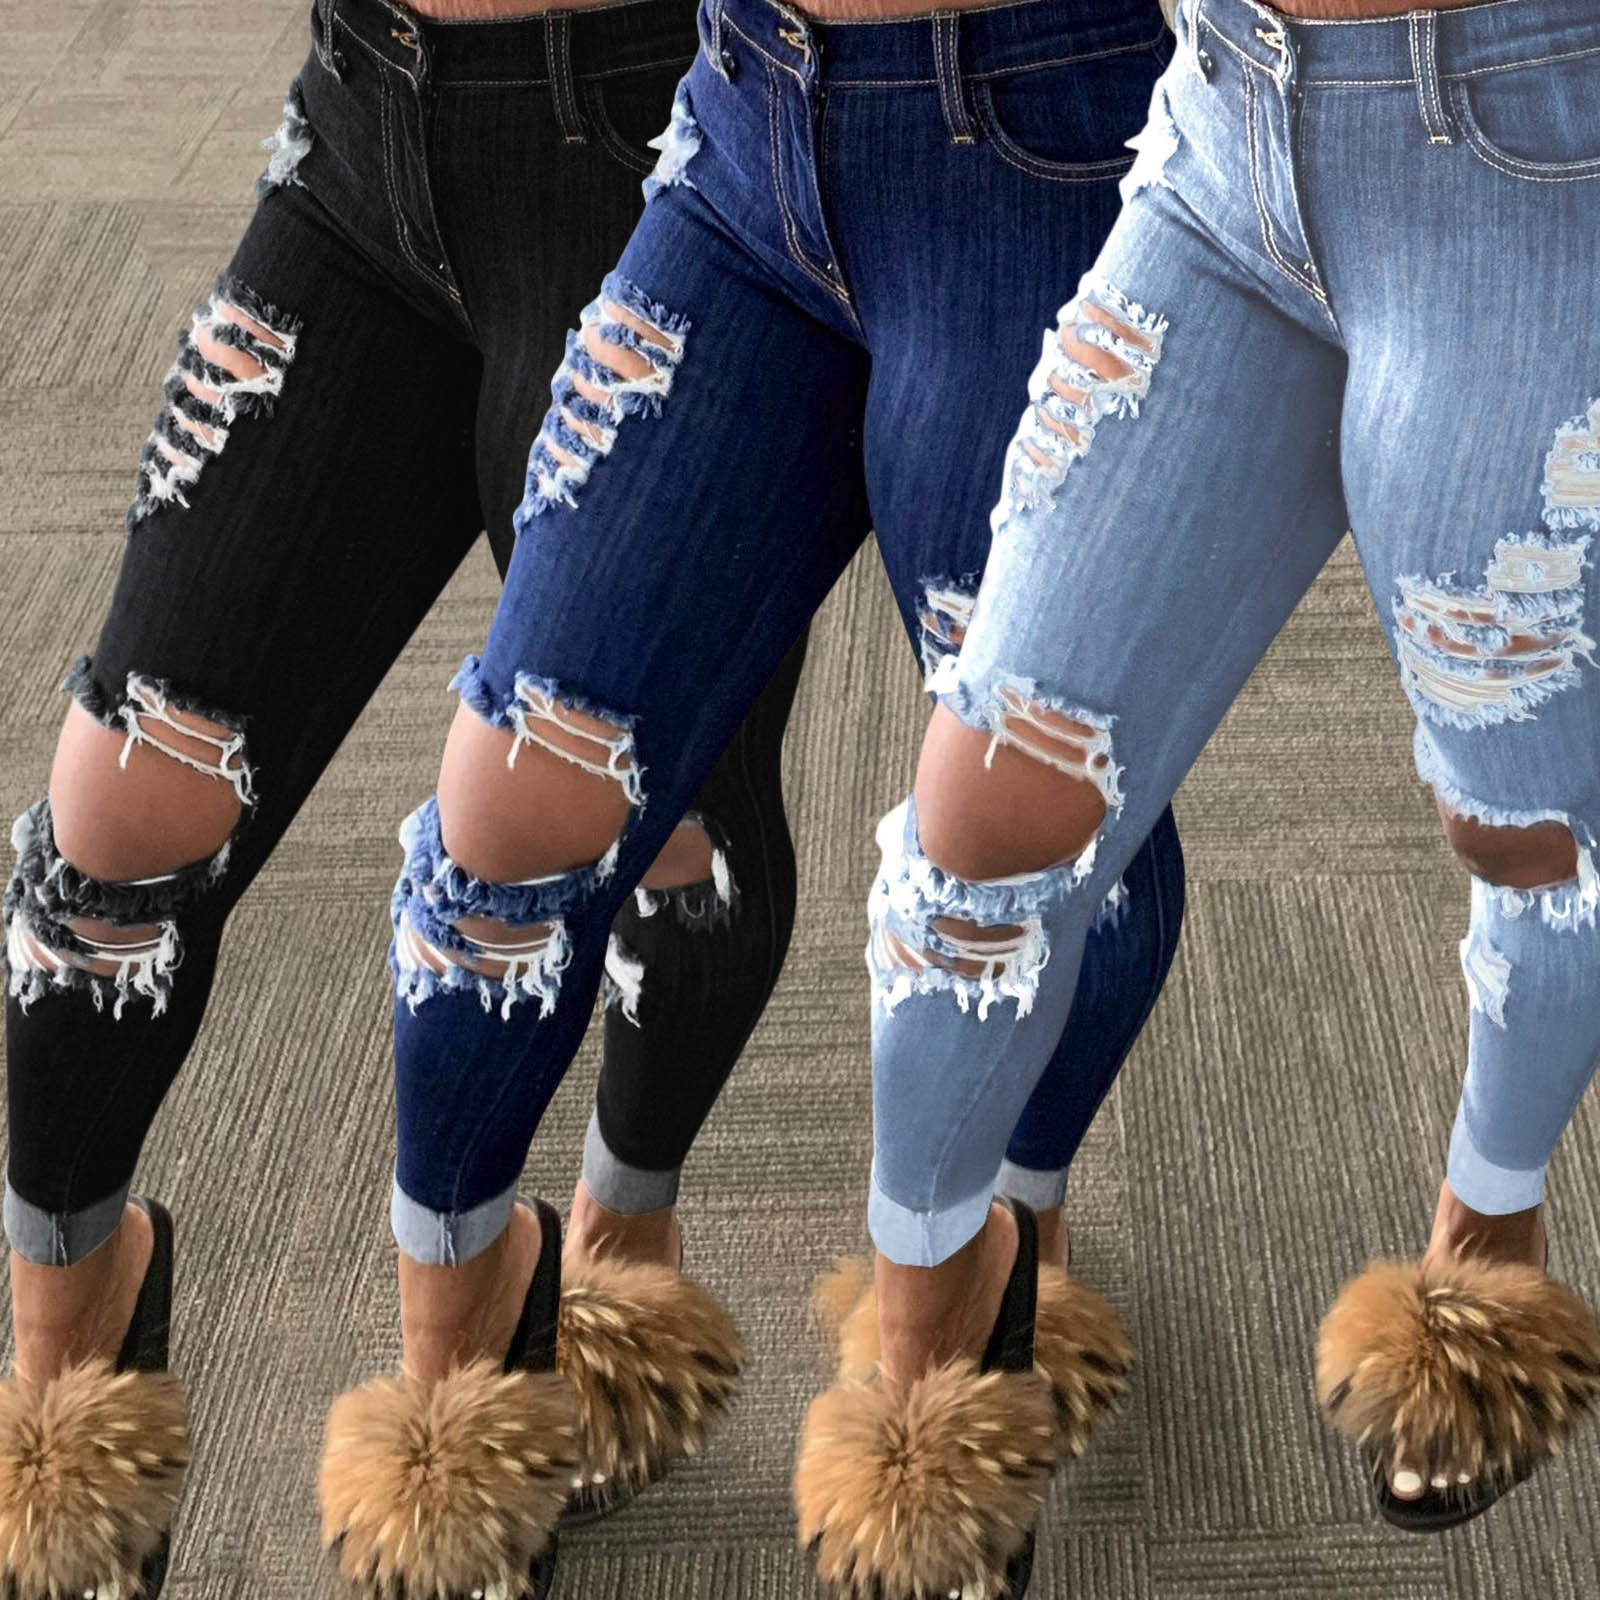 TELOTUNY Ladies Summer Jeans Popular Ripped Fringed Trousers Casual Fashion Stretch Tight Long Pants